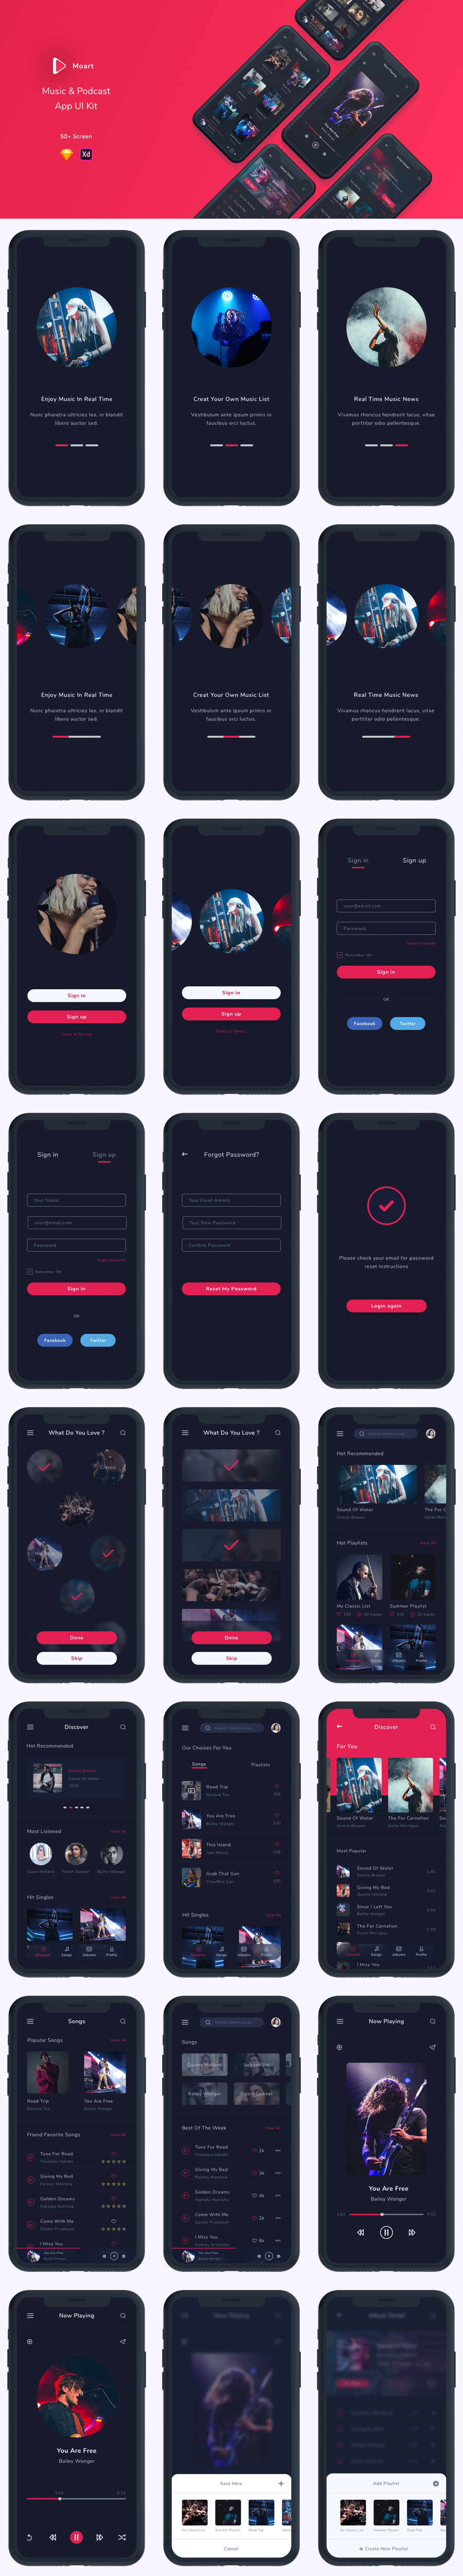 Moart - Music and Podcast App UI Kit - 1